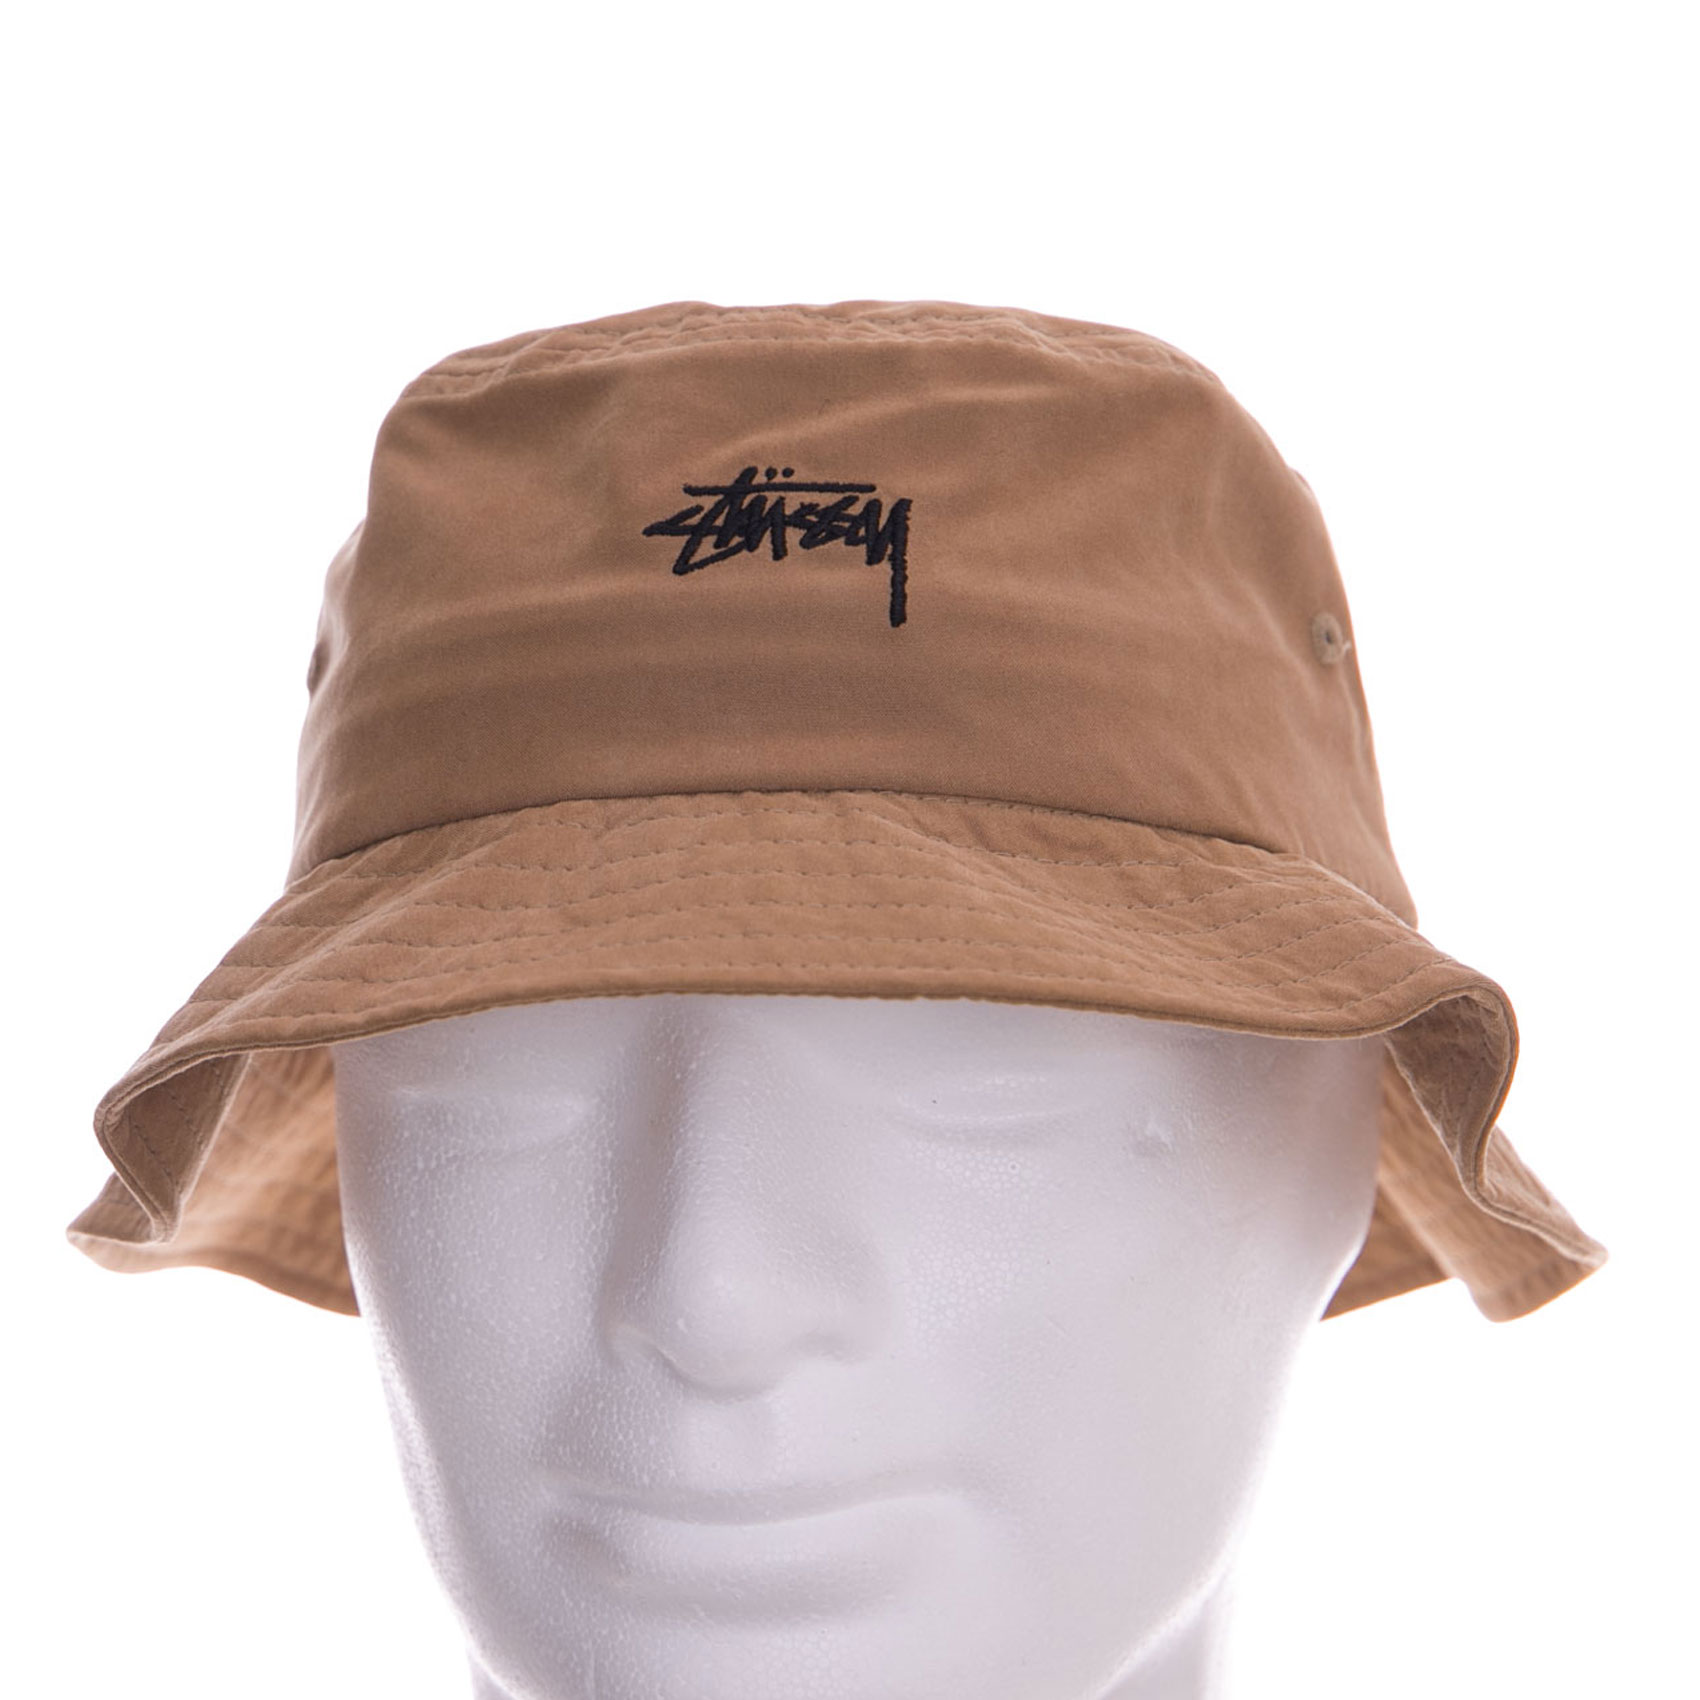 82264df46 Details about Stussy Hats Stock Bucket Hat Camel Brown